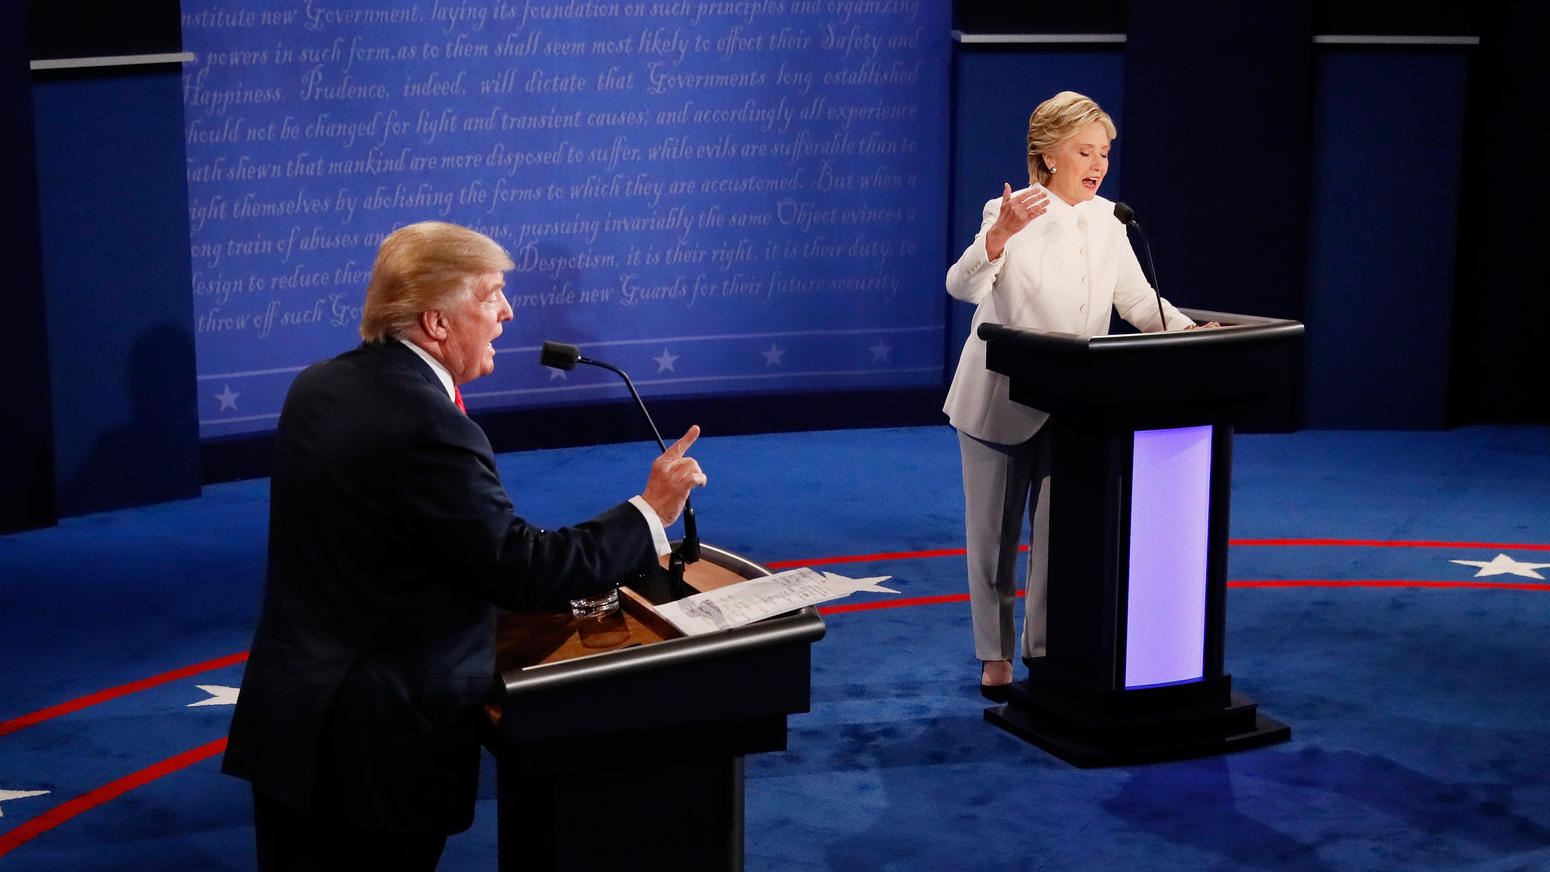 Full Video: Watch the Second Trump/Clinton Debate ...